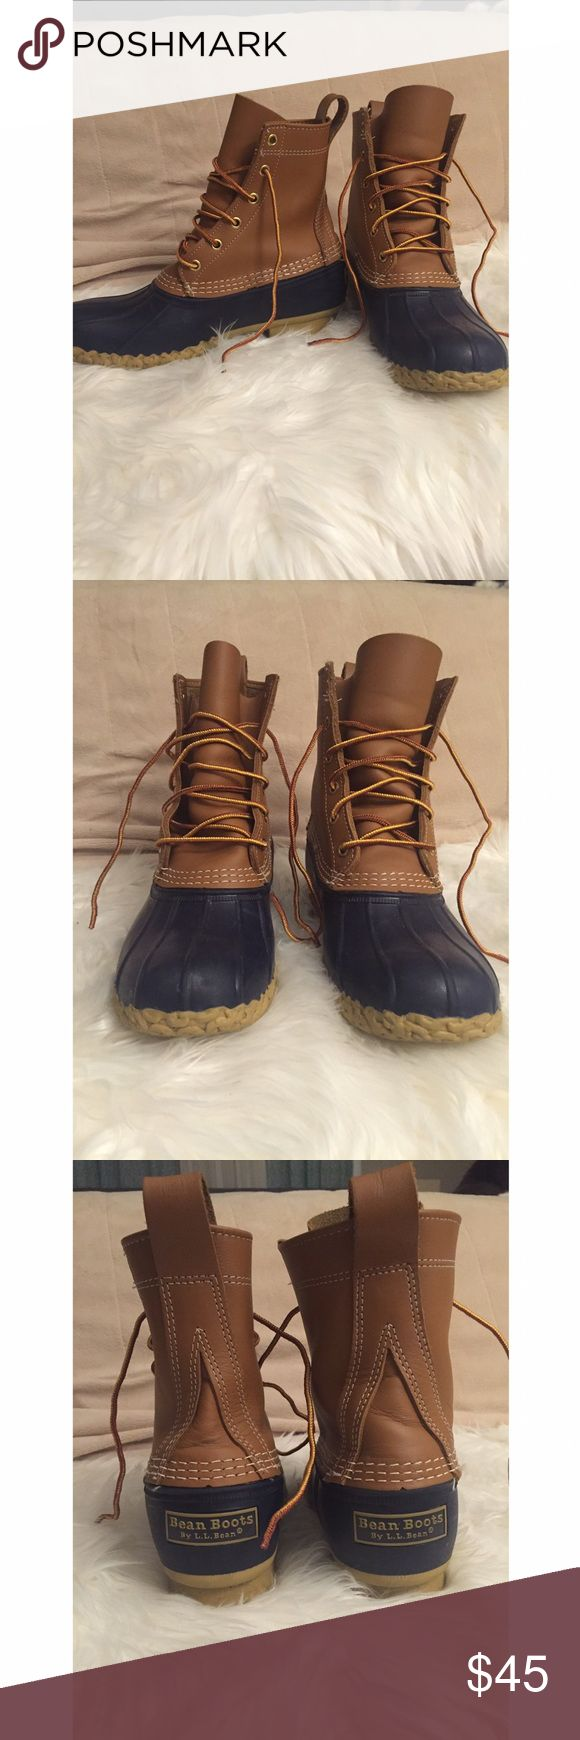 LL Bean boots in blue Authentic LL bean boots. I bought these from a consignment store and I believe there may be some kind of manufacturing defect on the right boot. These are a size 9, the left boot fits me but the right is too tight. I am generally a size 9. I think these would be best suited for a size 8.5. In the last photos you will see the side of the tongue of the boot is cut because I tried to squeeze my foot in. There is some wear on the bottom but no noticeable defects on the…